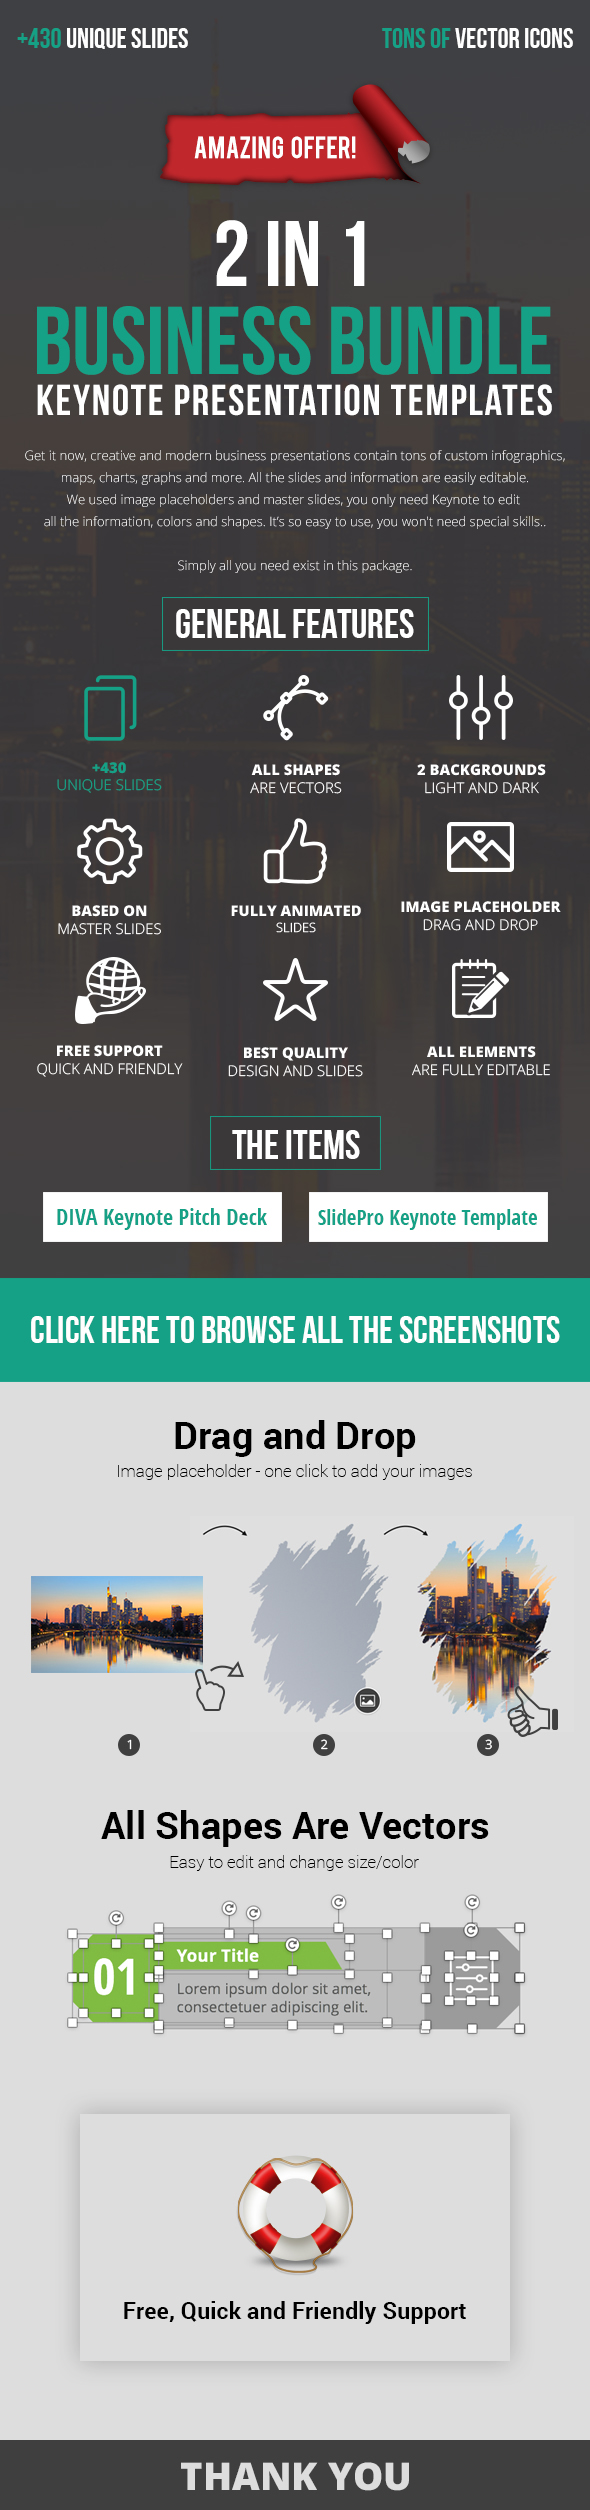 2 in 1 Business Keynote Presentation Bundle - Business Keynote Templates